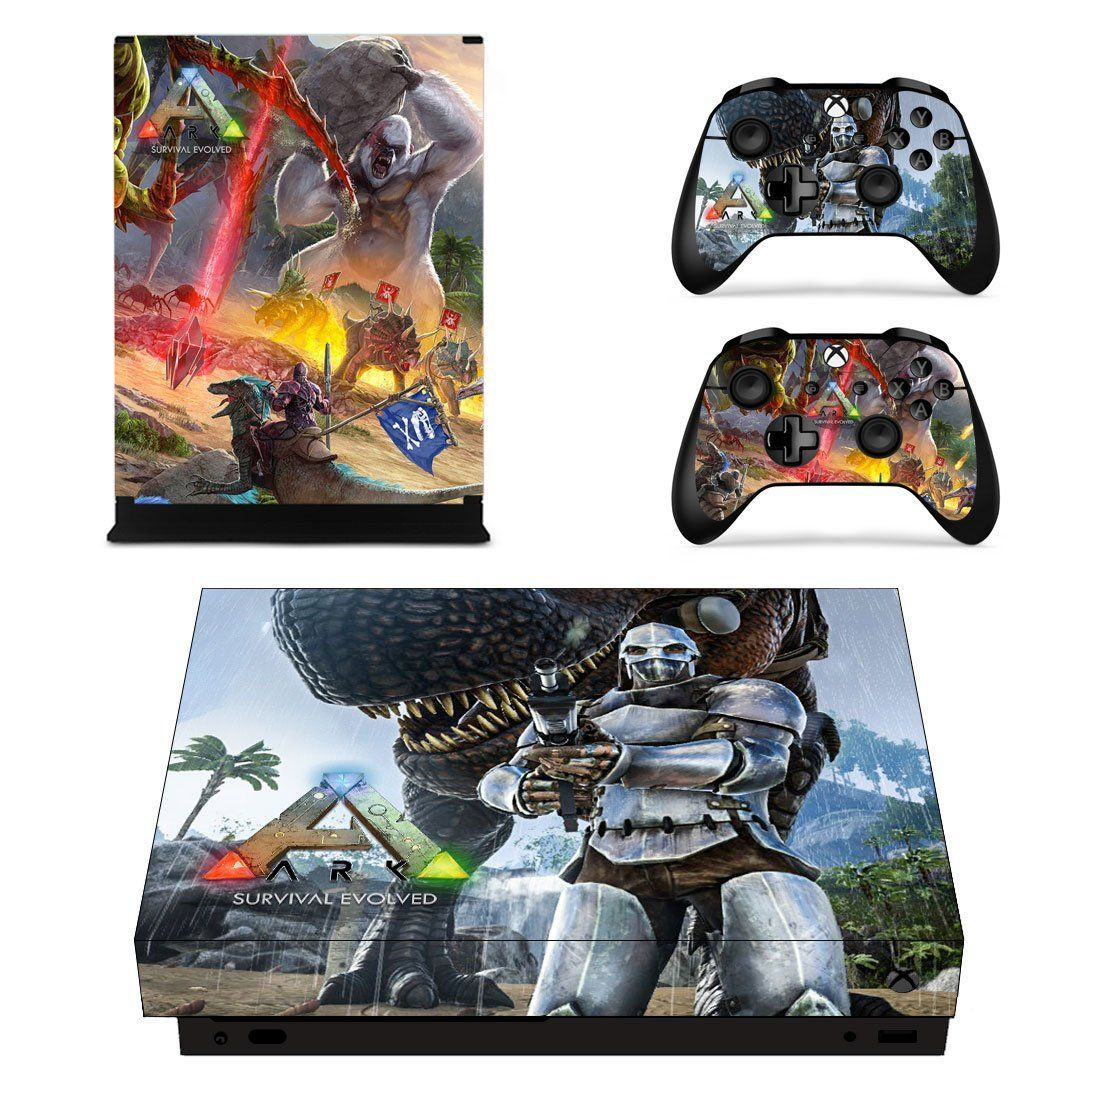 Ark Survival Evolved Xbox One X Skin Decal For Console And 2 Controllers Ark Survival Evolved Xbox One Xbox